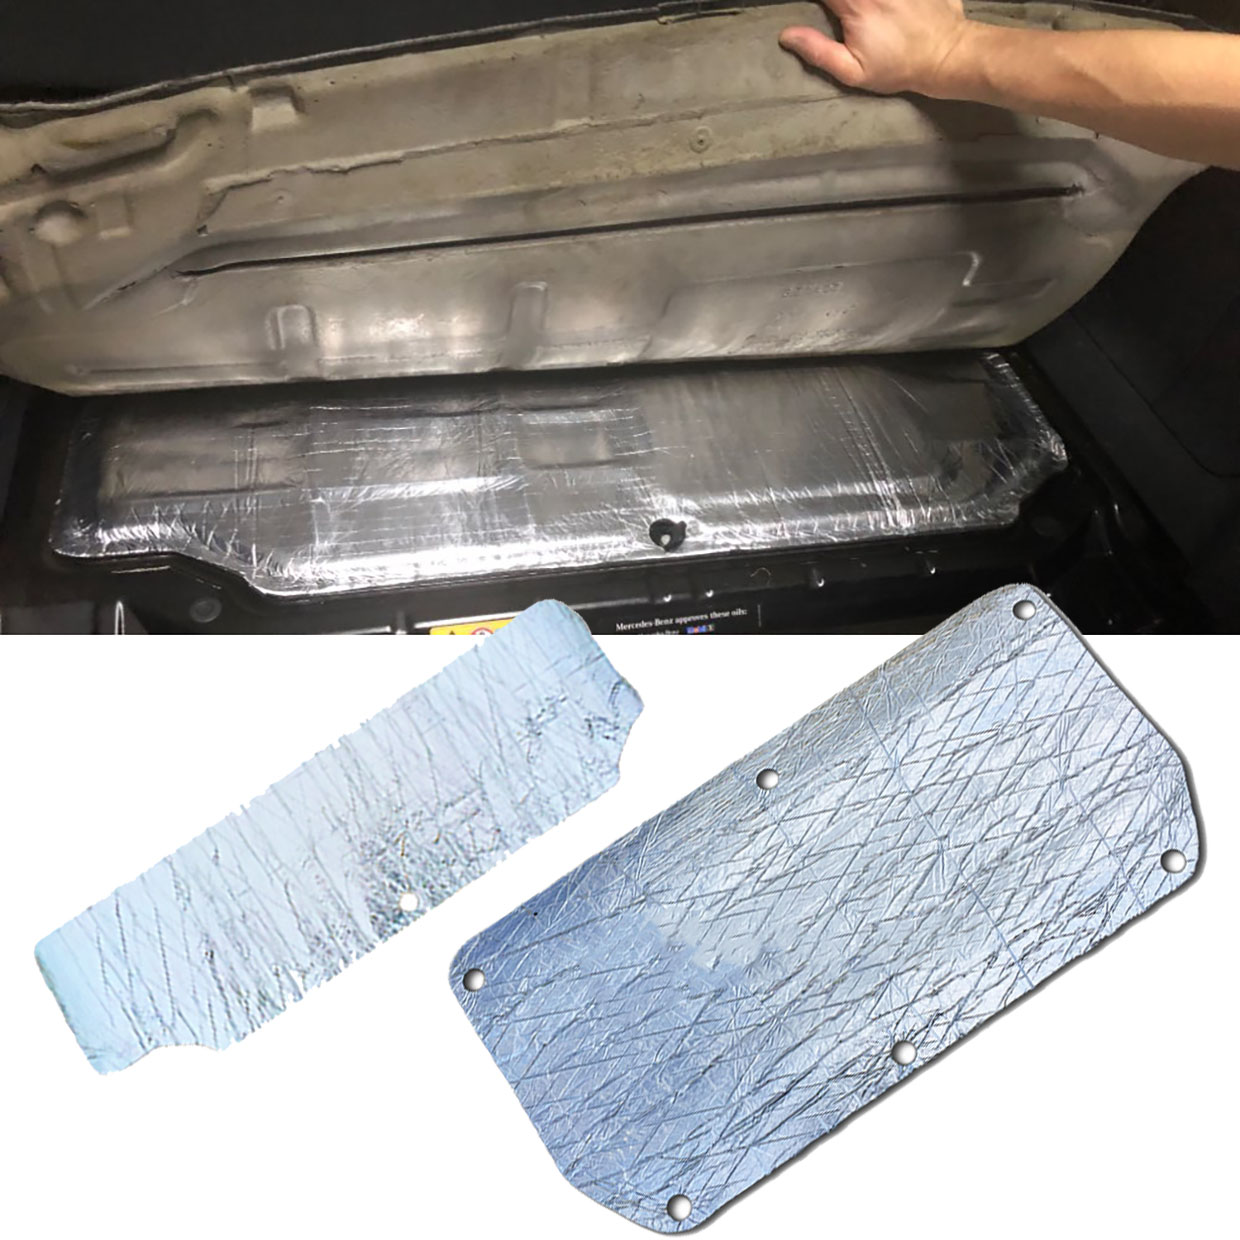 For Smart 451 Smart 453 Car Glass Fibre Sound Insulation Proofing Deadening Closed Cell Foam Car Hood Engine Firewall Heat Mat